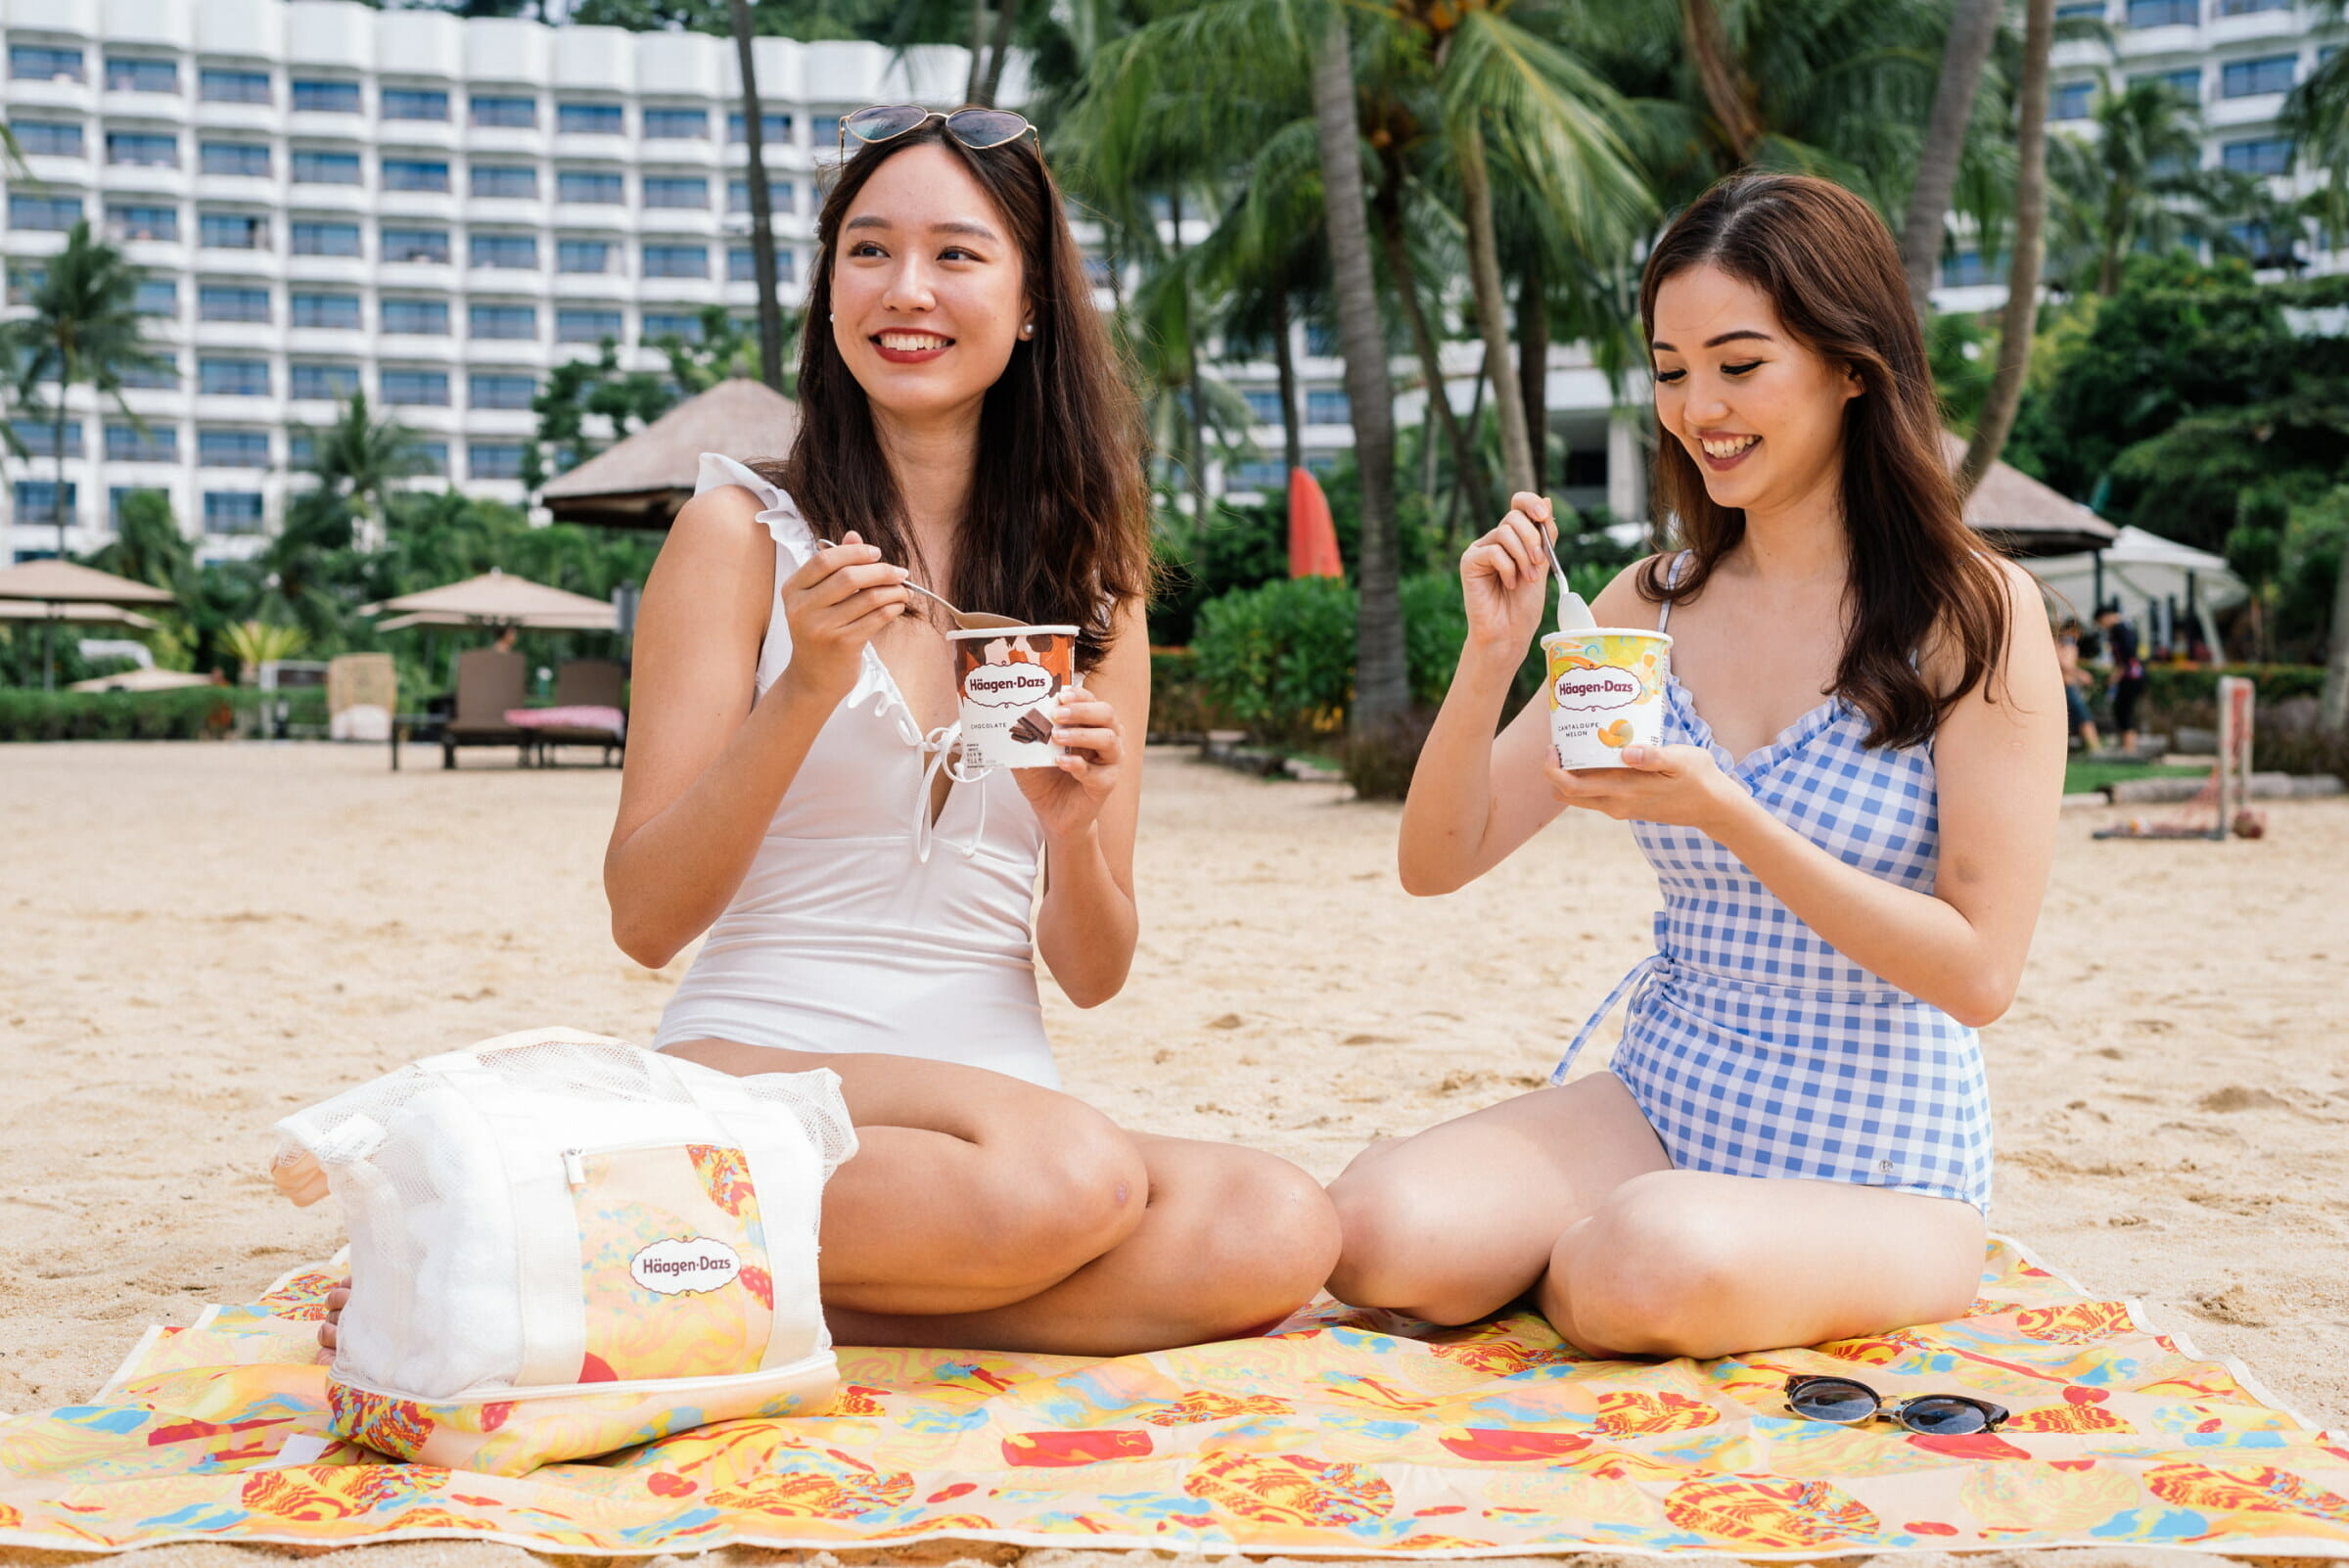 Sweet Escape: Shangri-La And Häagen-Dazs Launch An Ice-Cream-Themed Staycation